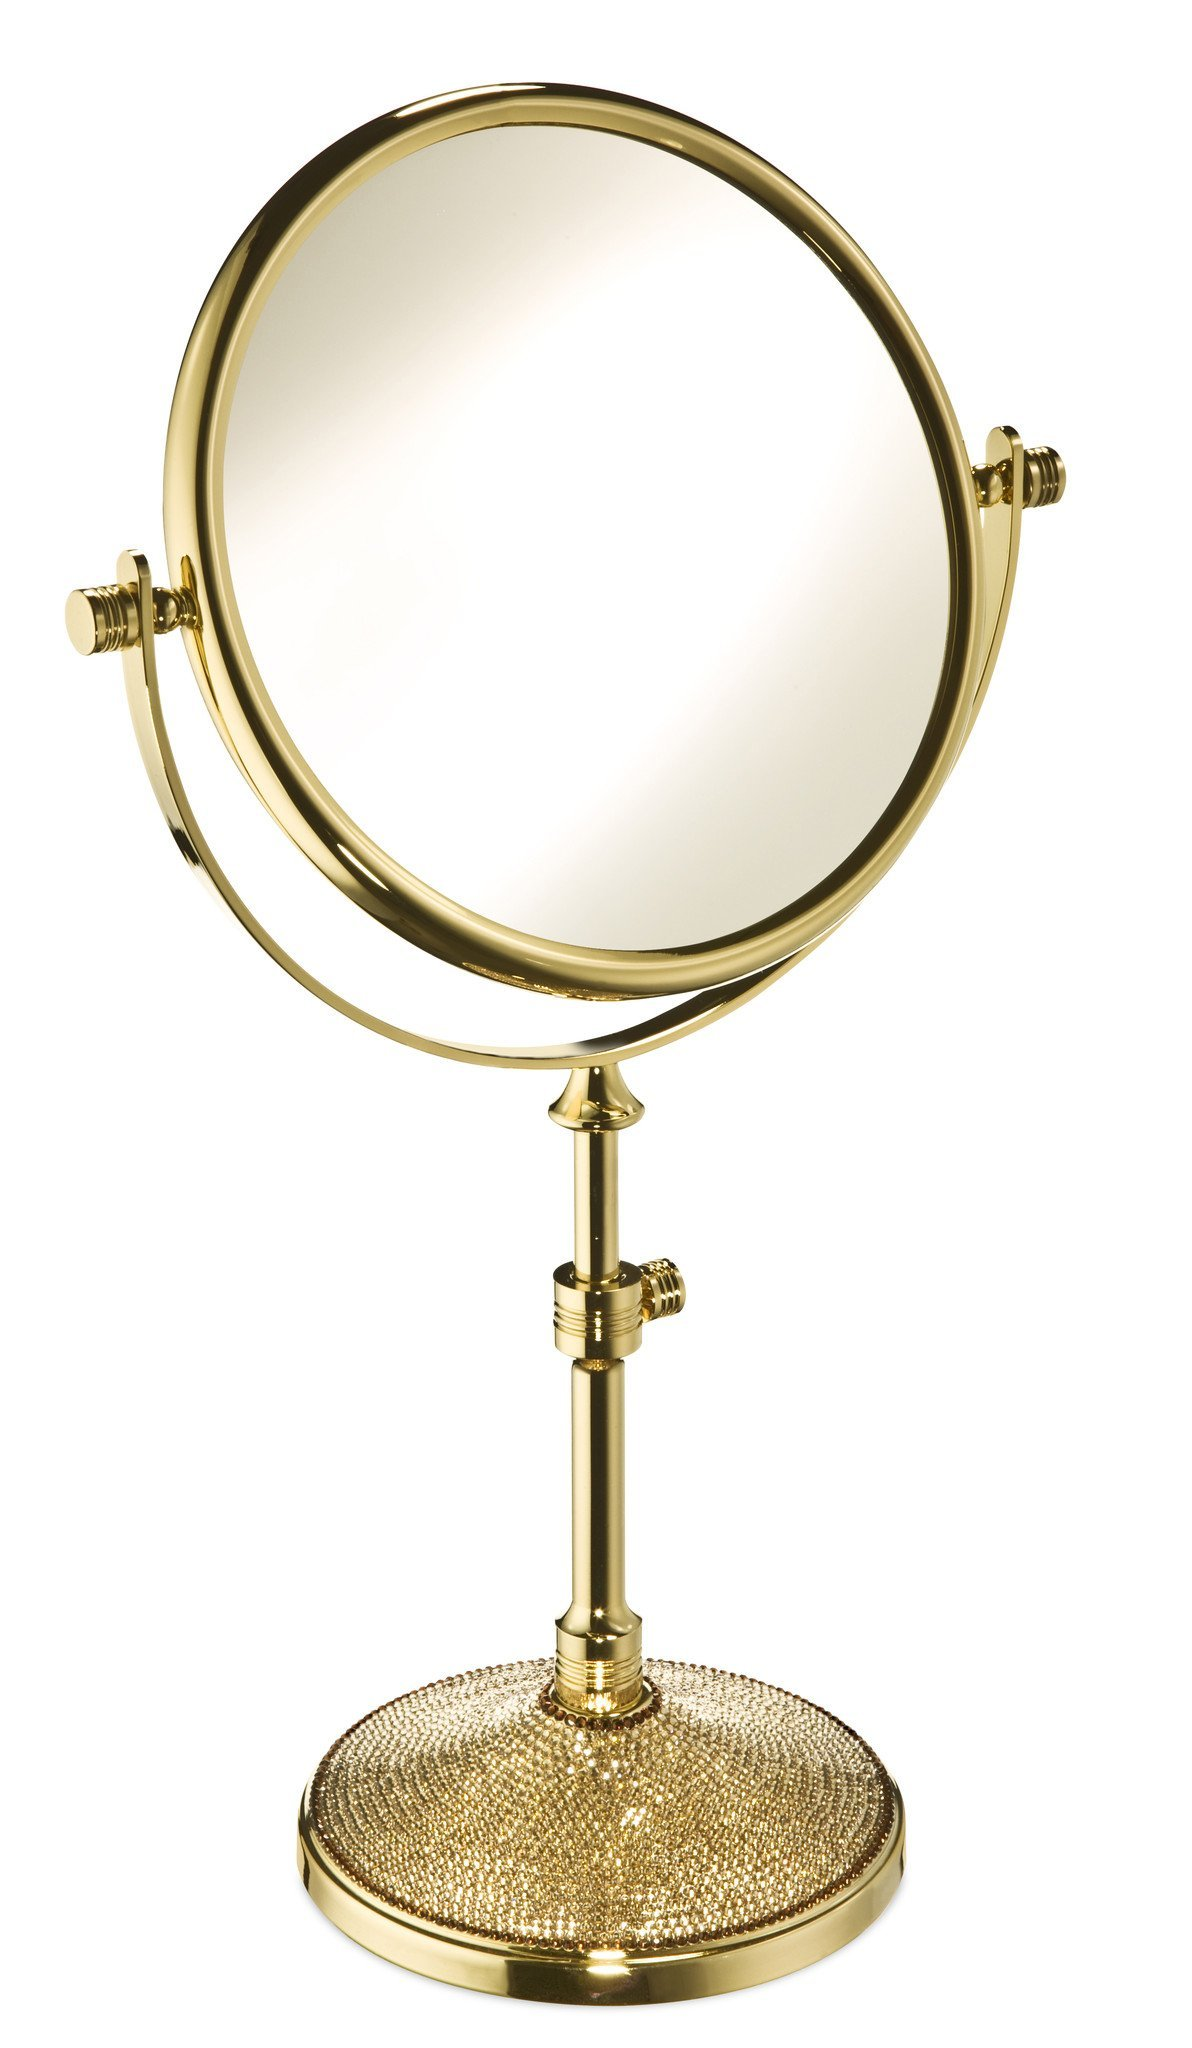 Starlight Table 3x Magnifying Make up Cosmetic Adjustable Mirror W/ Swarovski Crystals (Polished Gold)